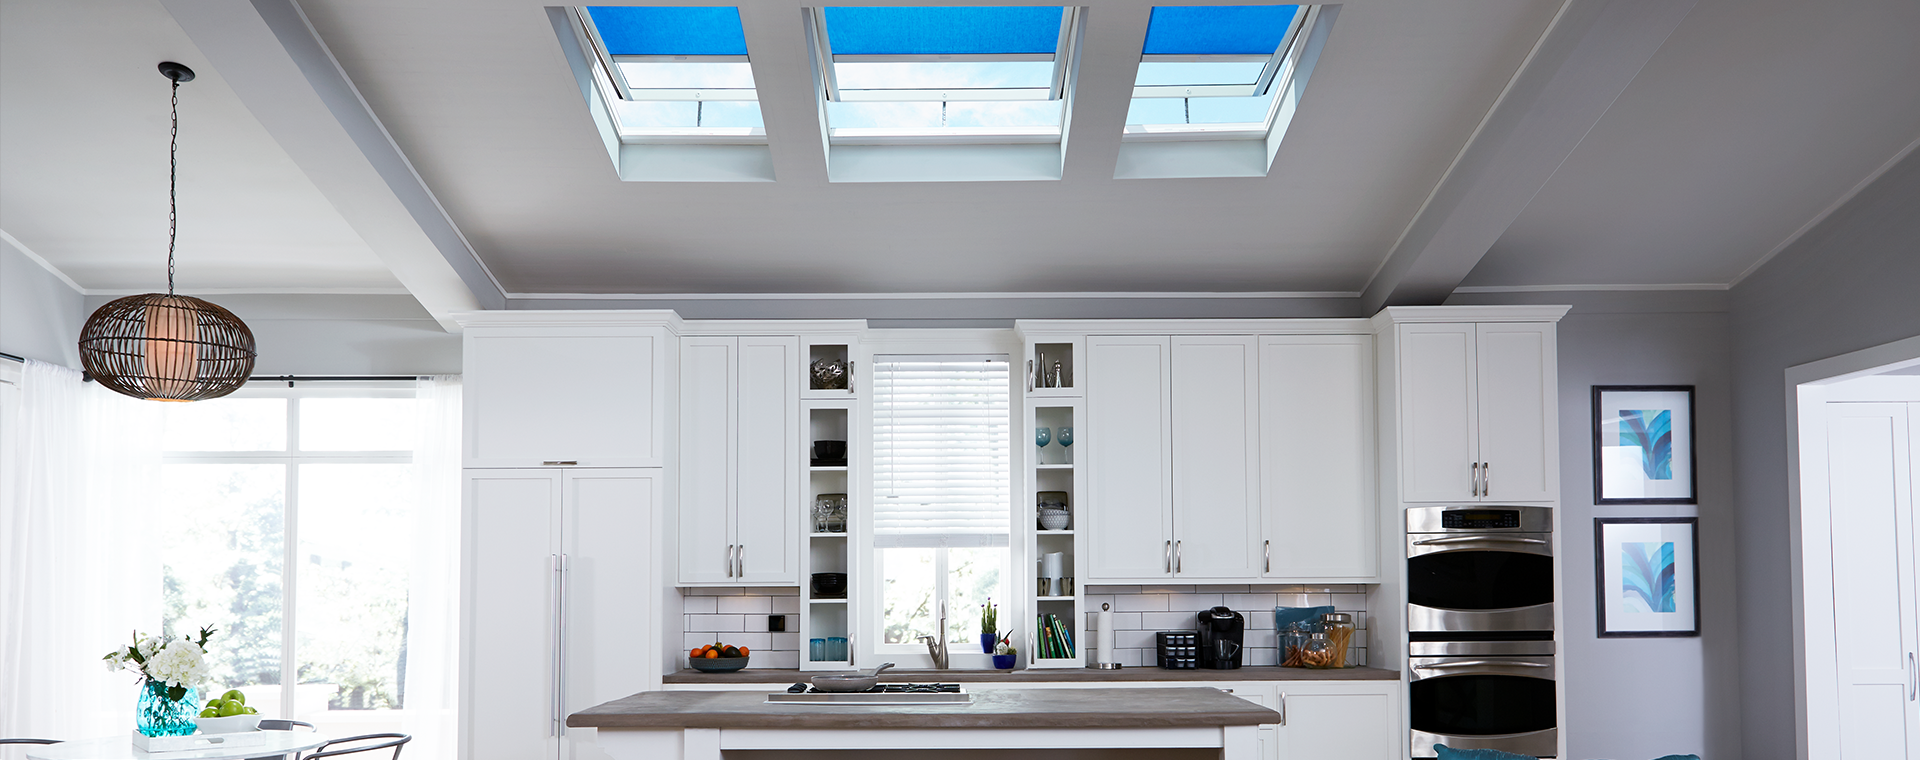 New Skylight Installation Lebanon